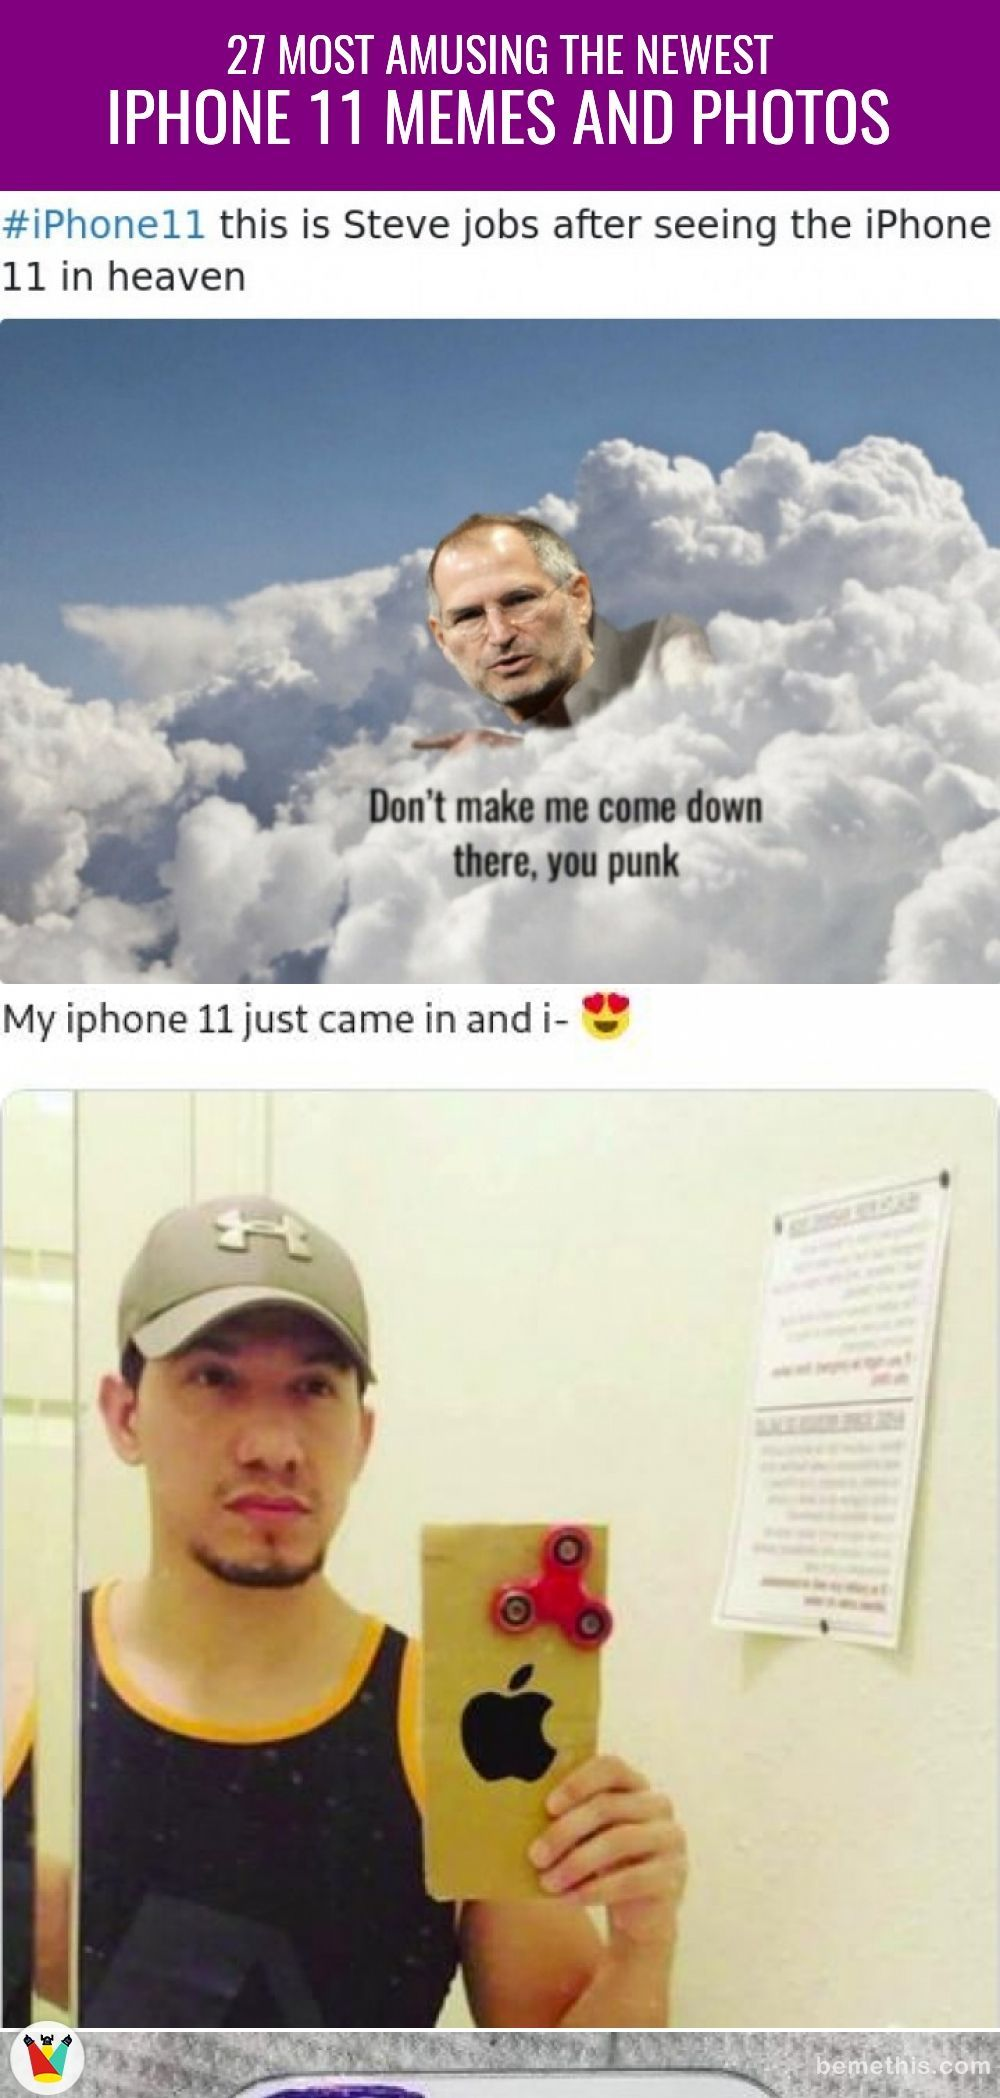 27 Most Amusing The Newest iPhone 11 Memes and Photos